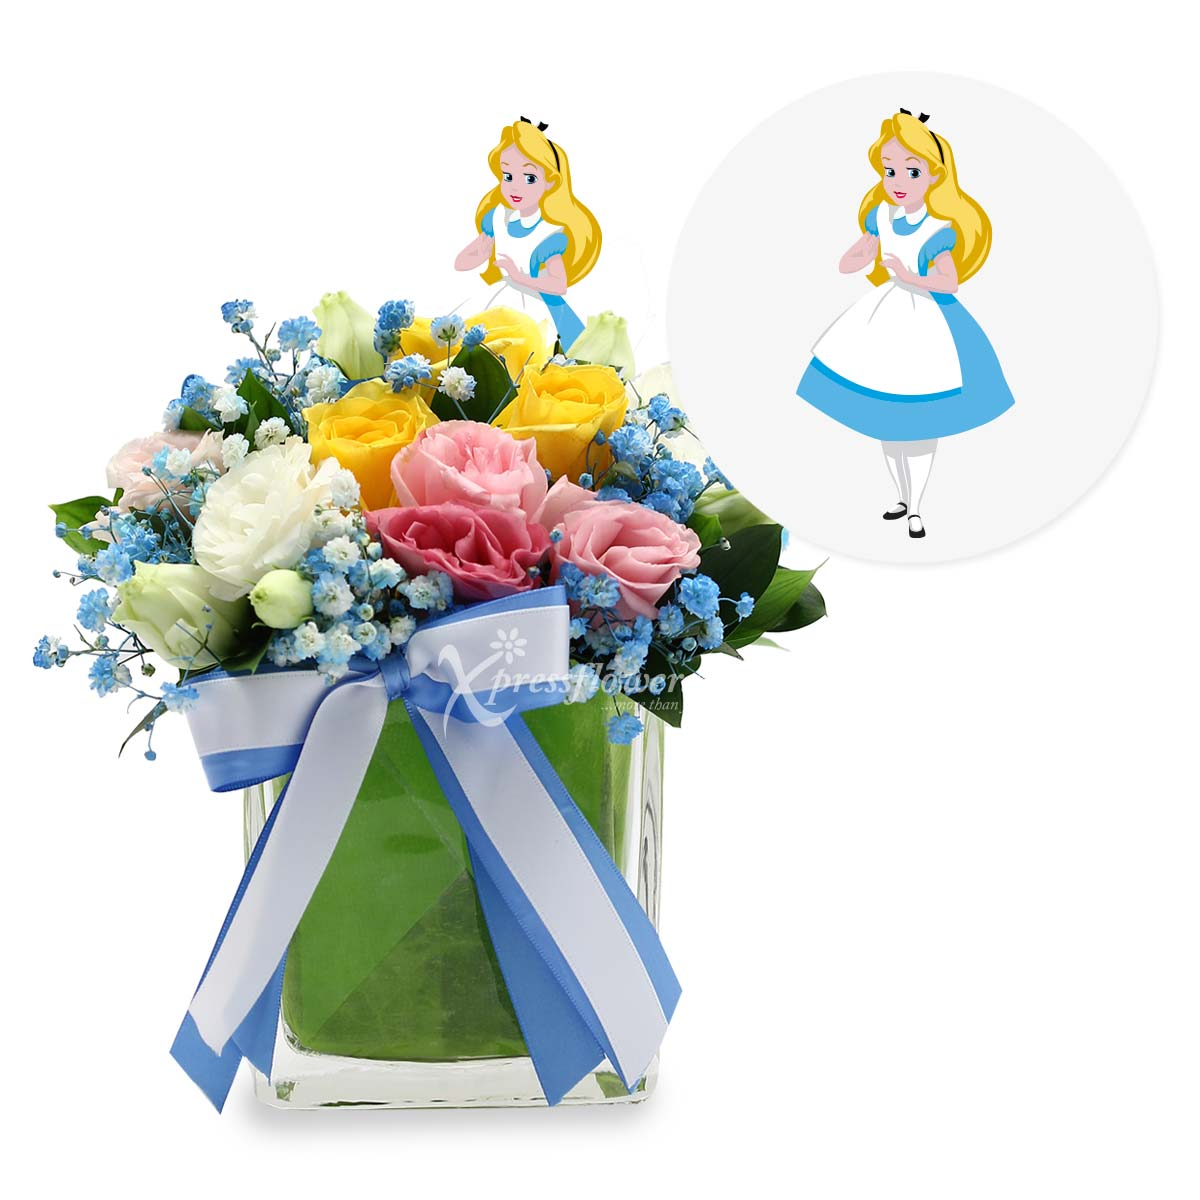 DSAR1832 Faith, Trust & Pixie Dust flower arrangement